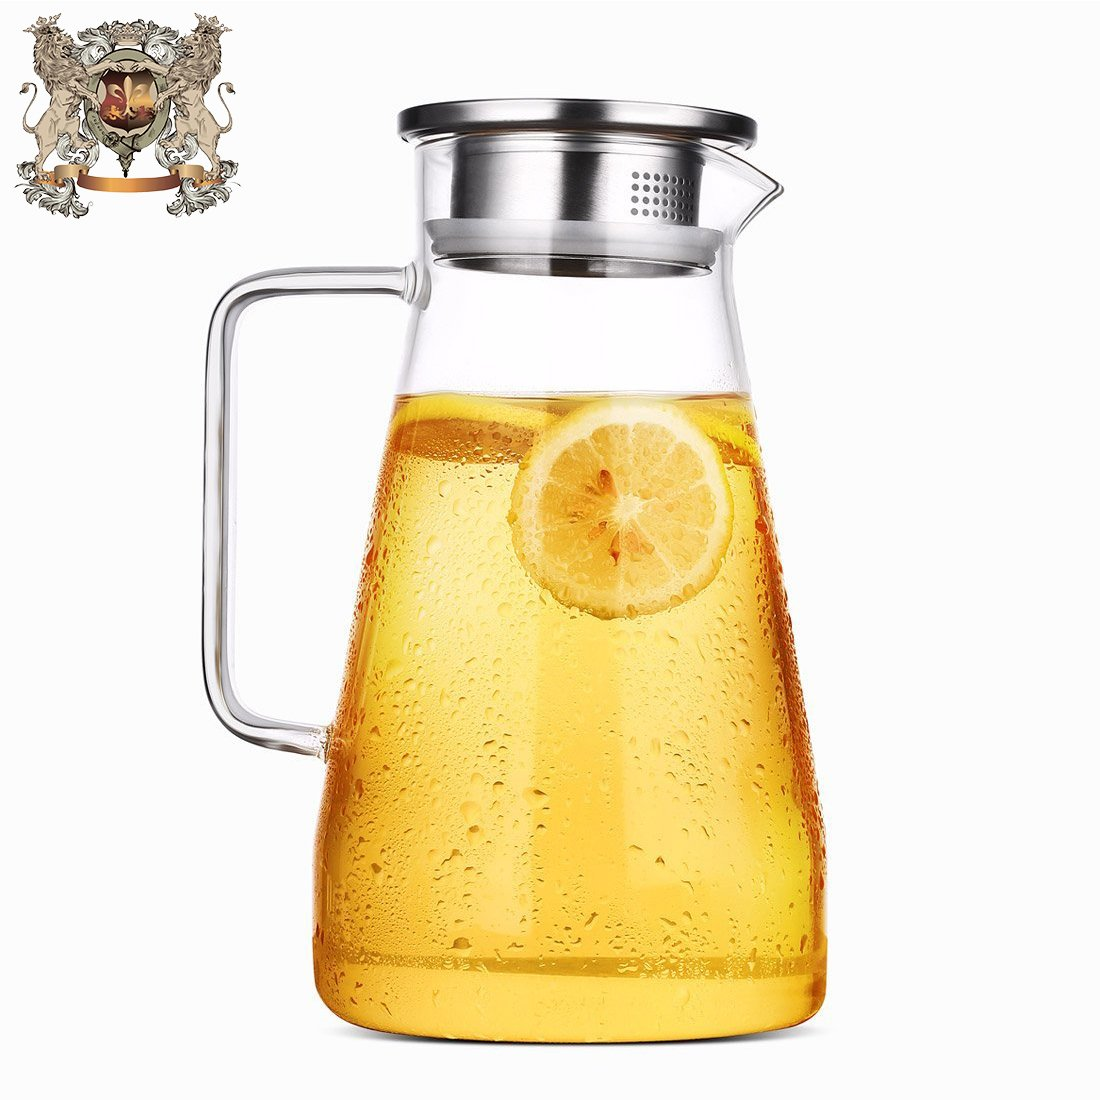 ONE DAY 1.5L / 1.8L Glass Water Carafe Pitcher with Stainless Steel Lid, Hot and Cold Water Jar/Carafe for Water,ice tea Juice container,fridge pitcher with handle (1800ML)